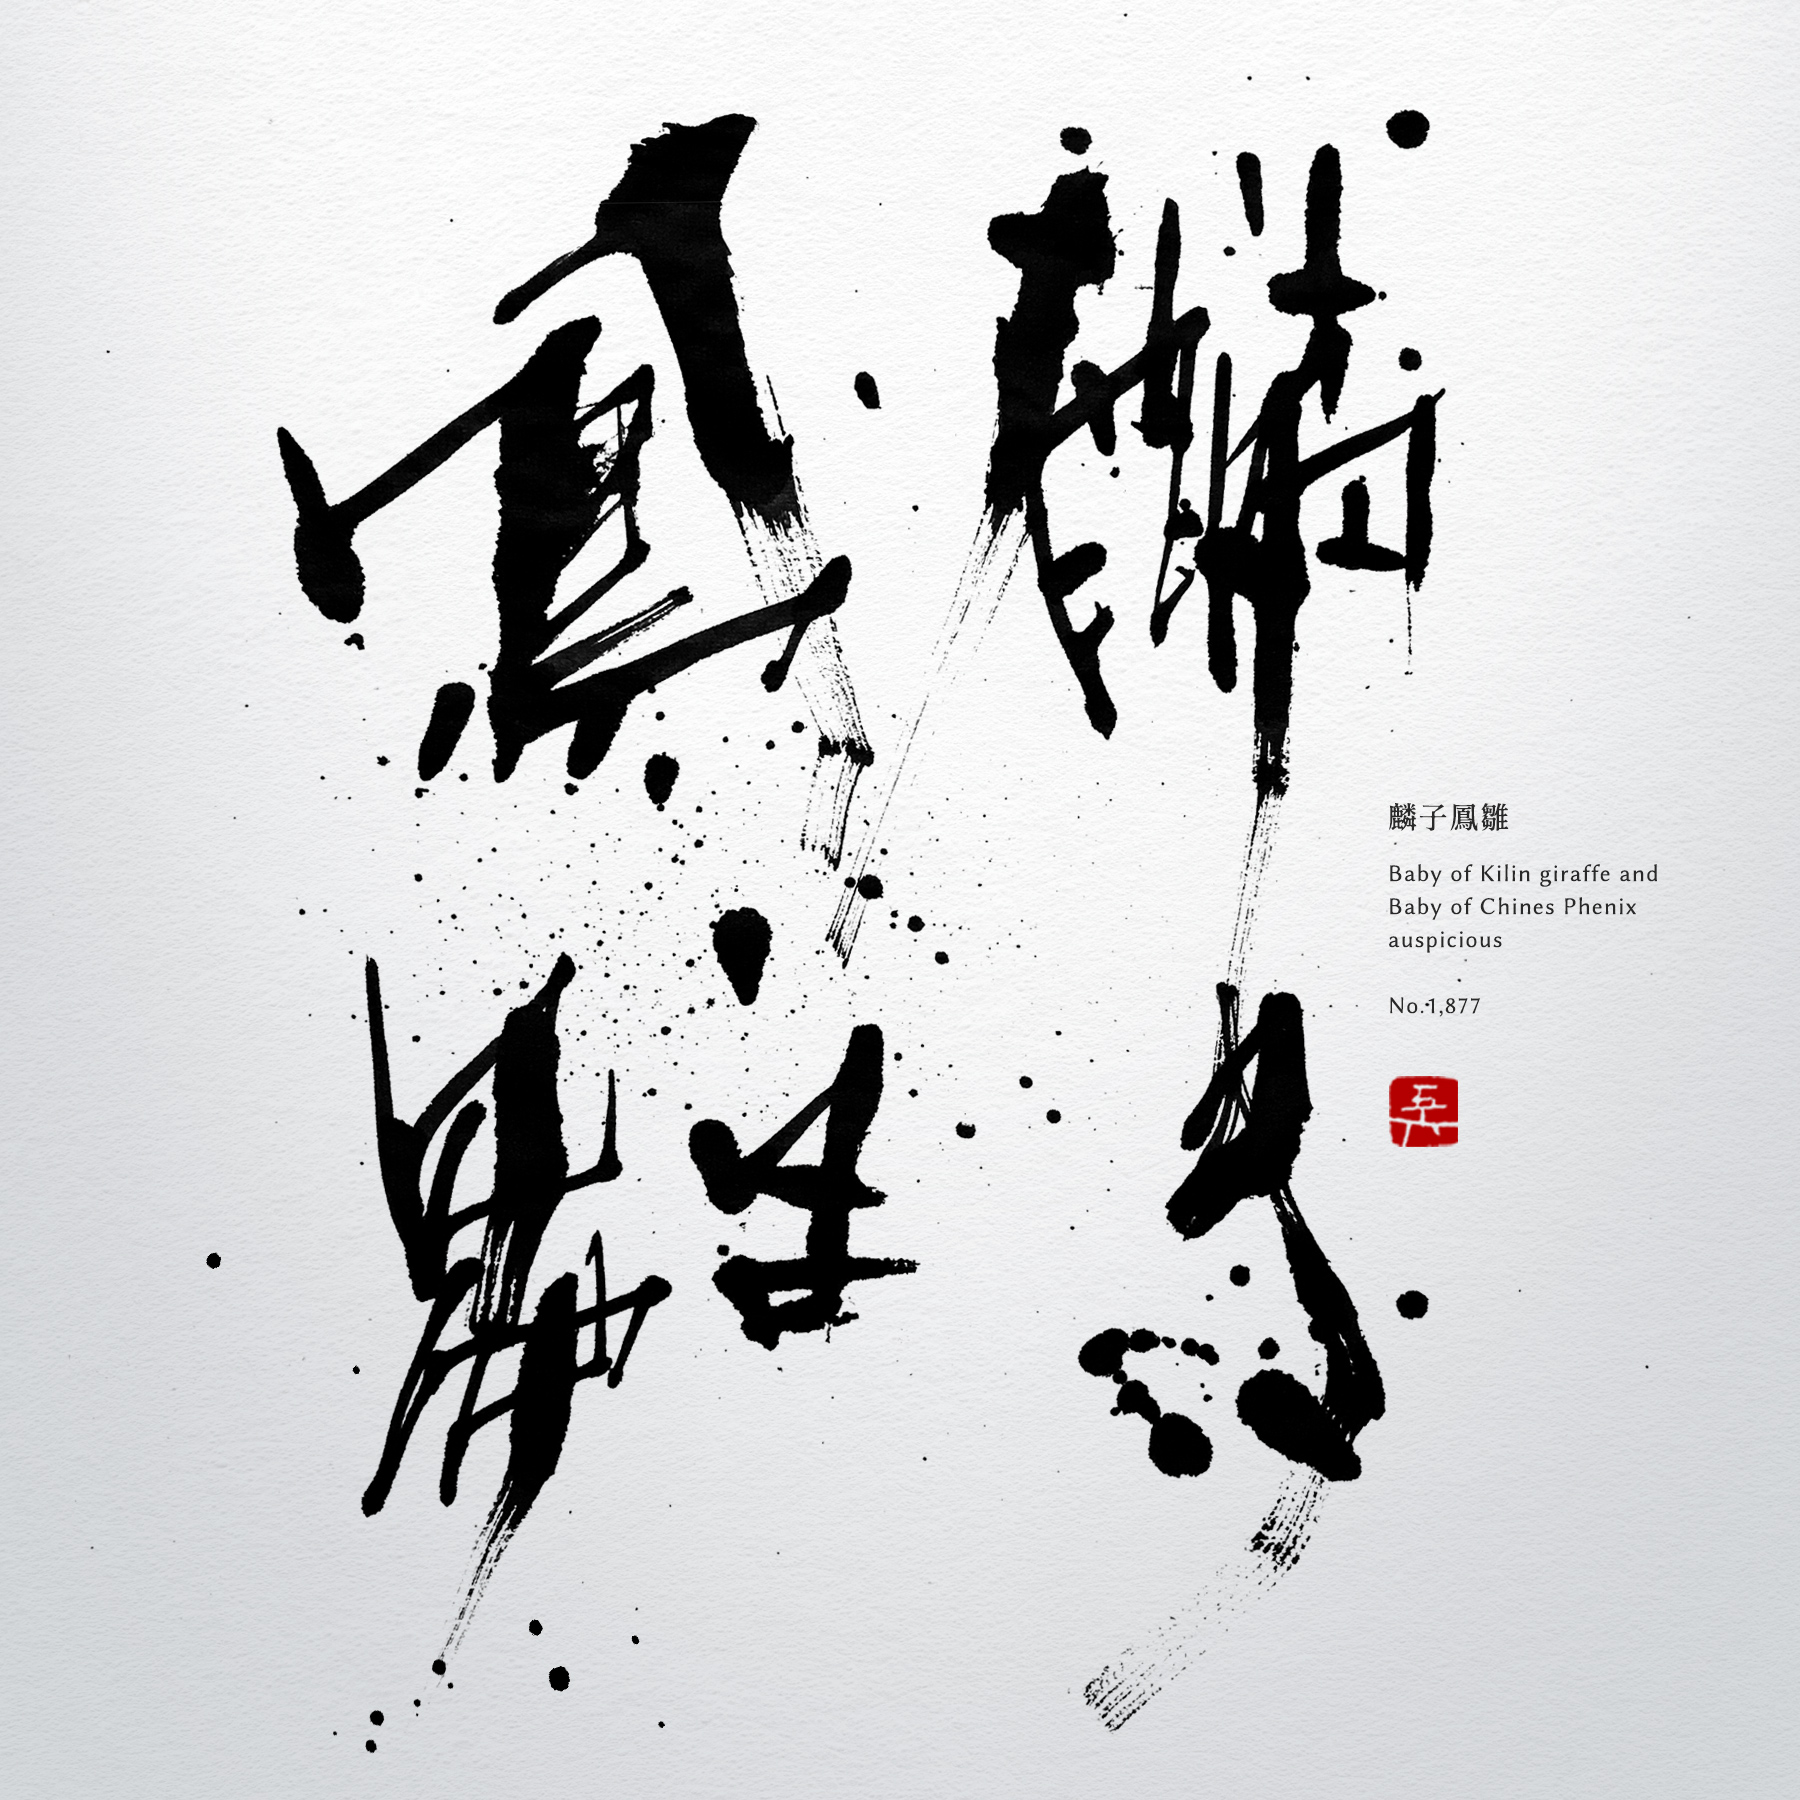 麟子鳳雛 | auspicious 書道作品 japaneseart japanese calligraphy 書家 田川悟郎 Goroh Tagawa